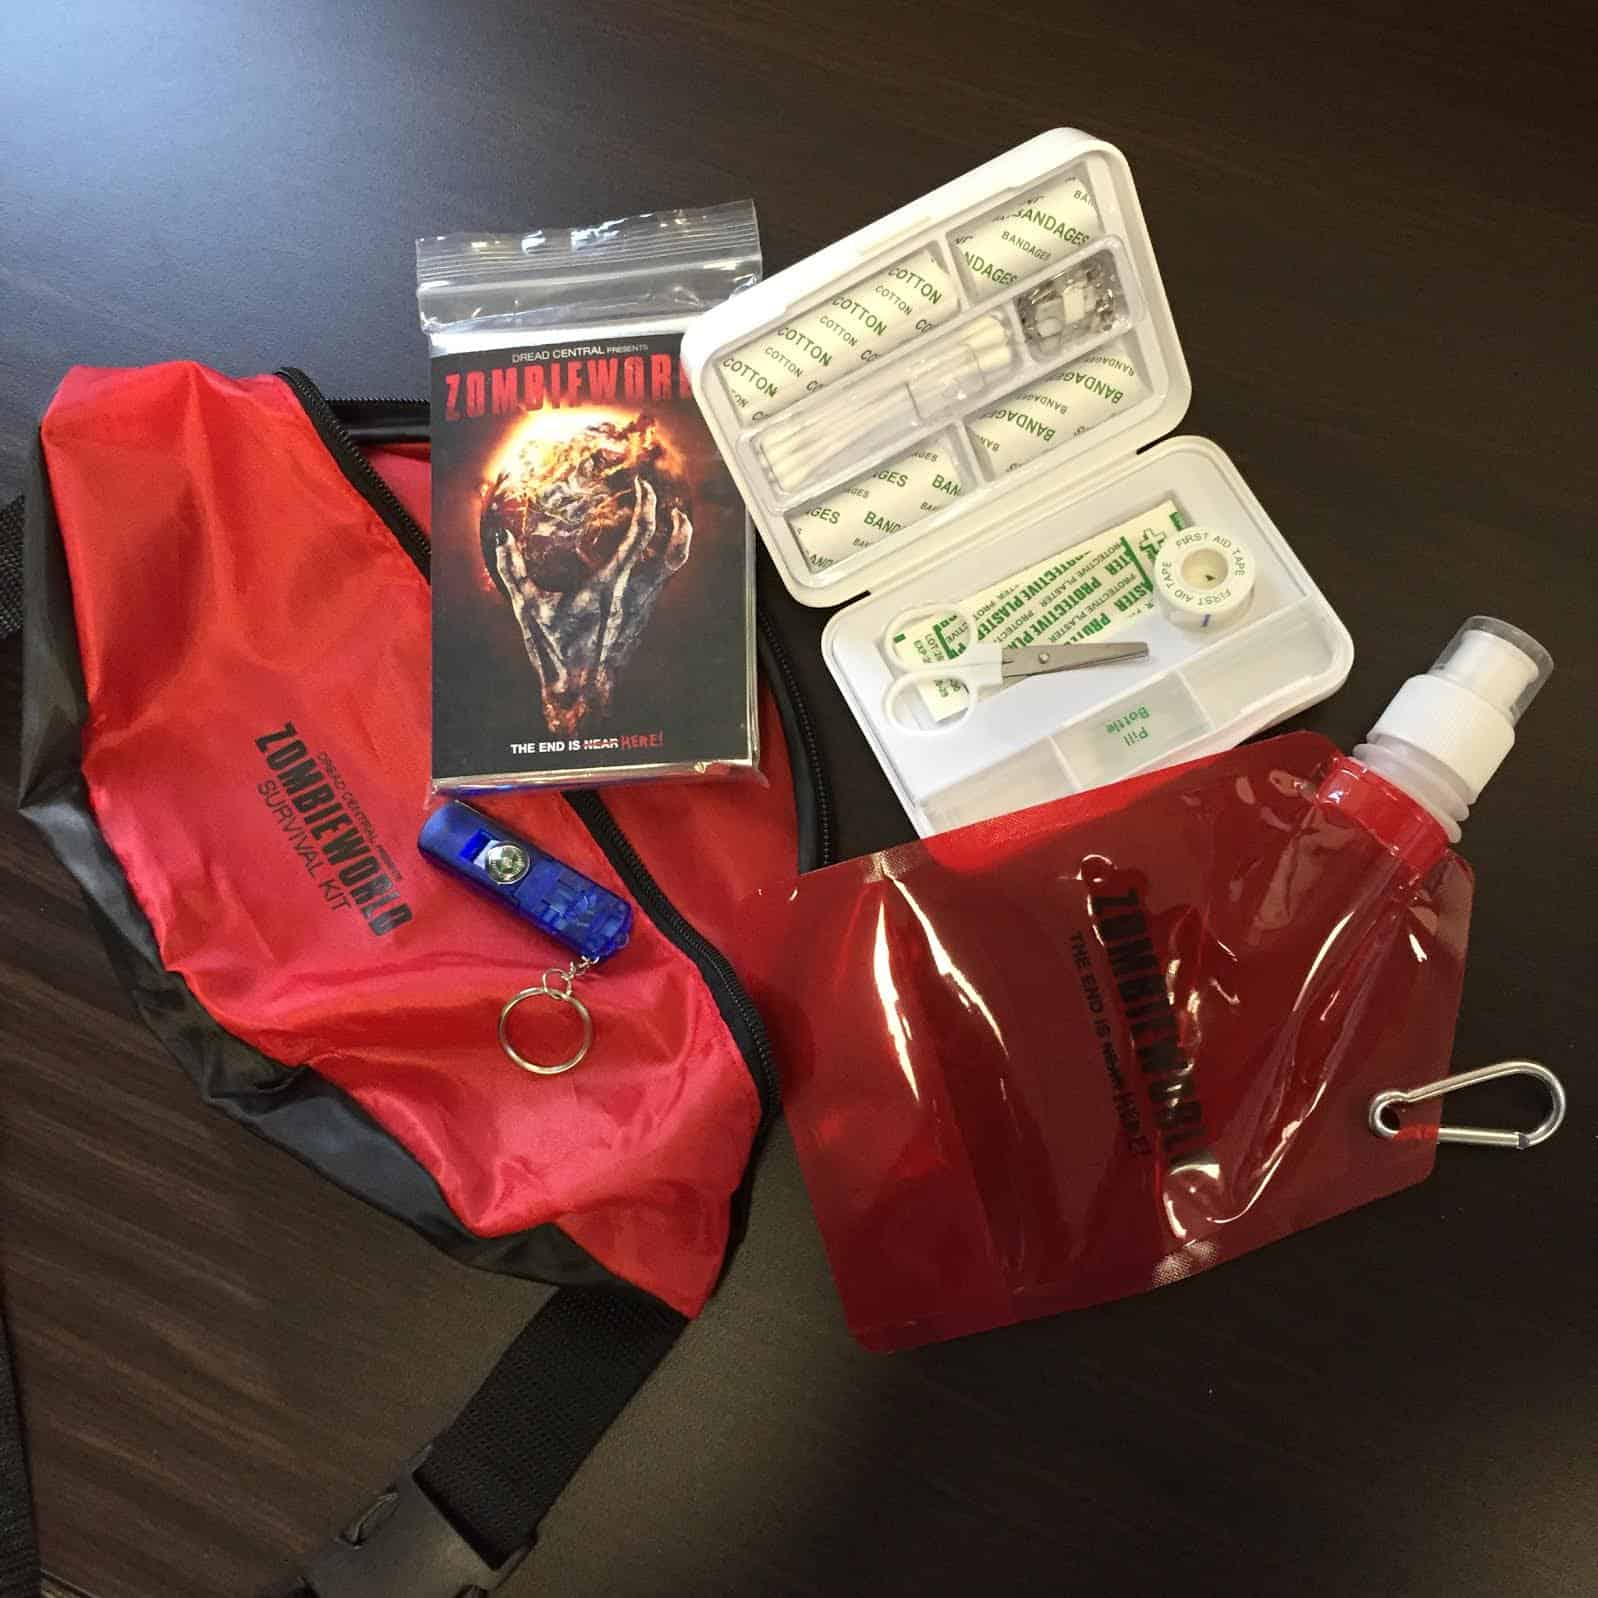 Zombieworld Survival Kit